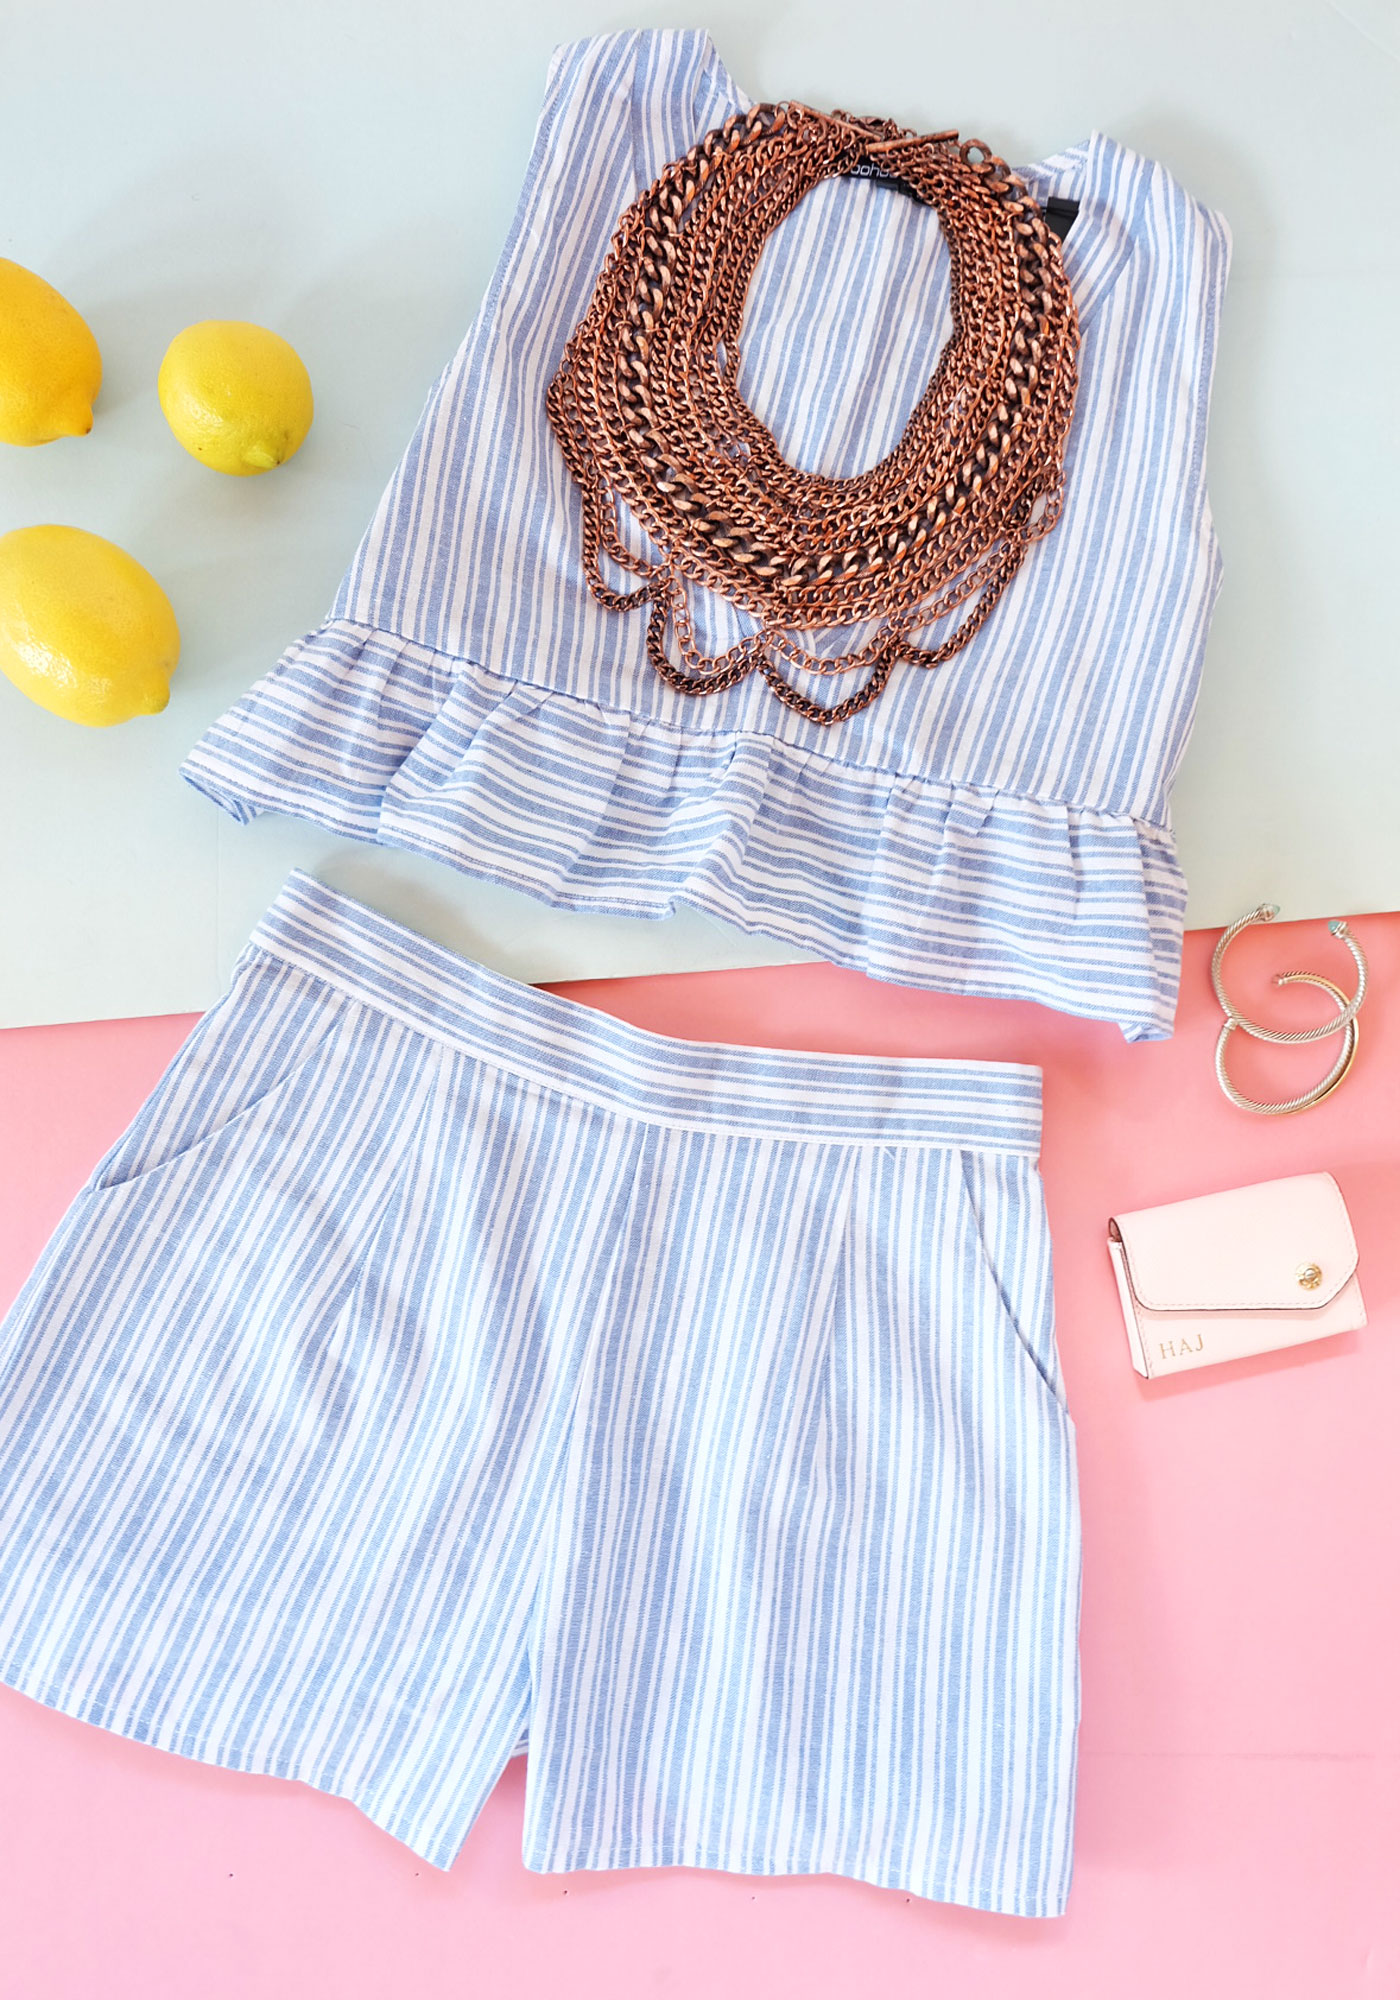 Cute and easy summer outfits, Co-ord two piece sets, summer trends 2016.